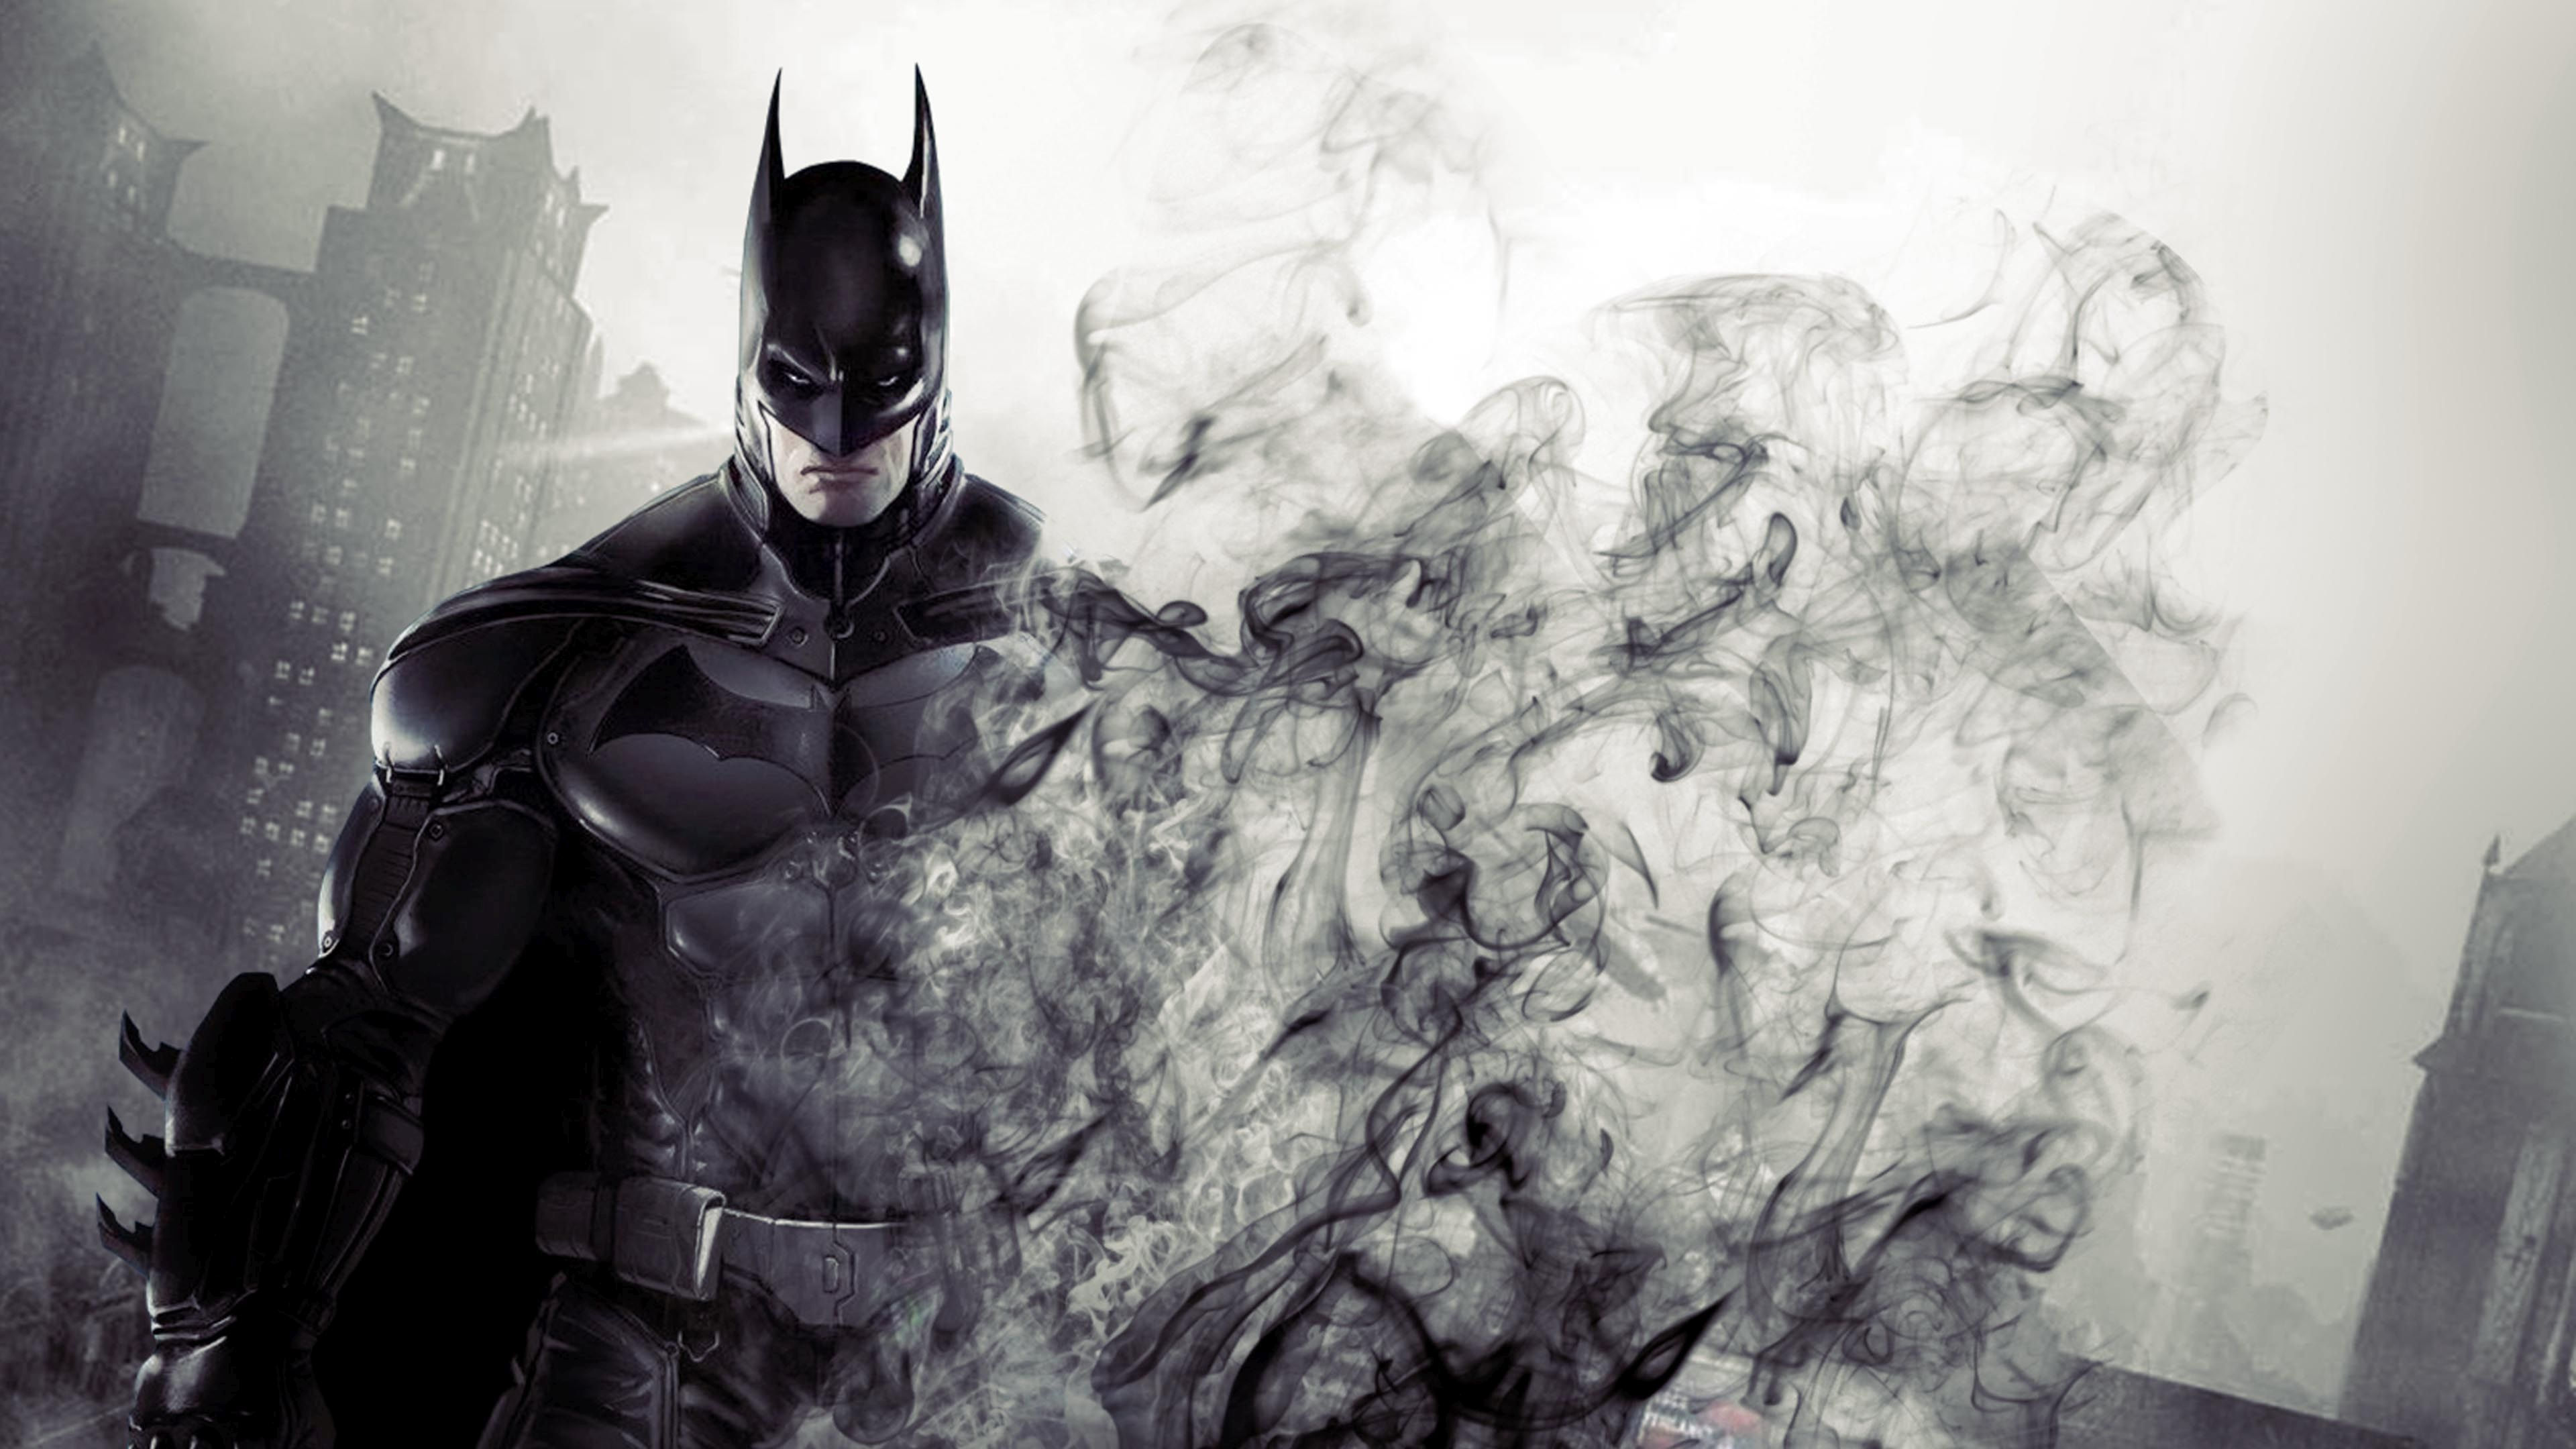 Batman Wallpaper For Mobile Phone Tablet Desktop Computer And Other Devices Hd And 4k Wallpapers In 2021 Batman Wallpaper Batman Batman Wallpapers For Mobile